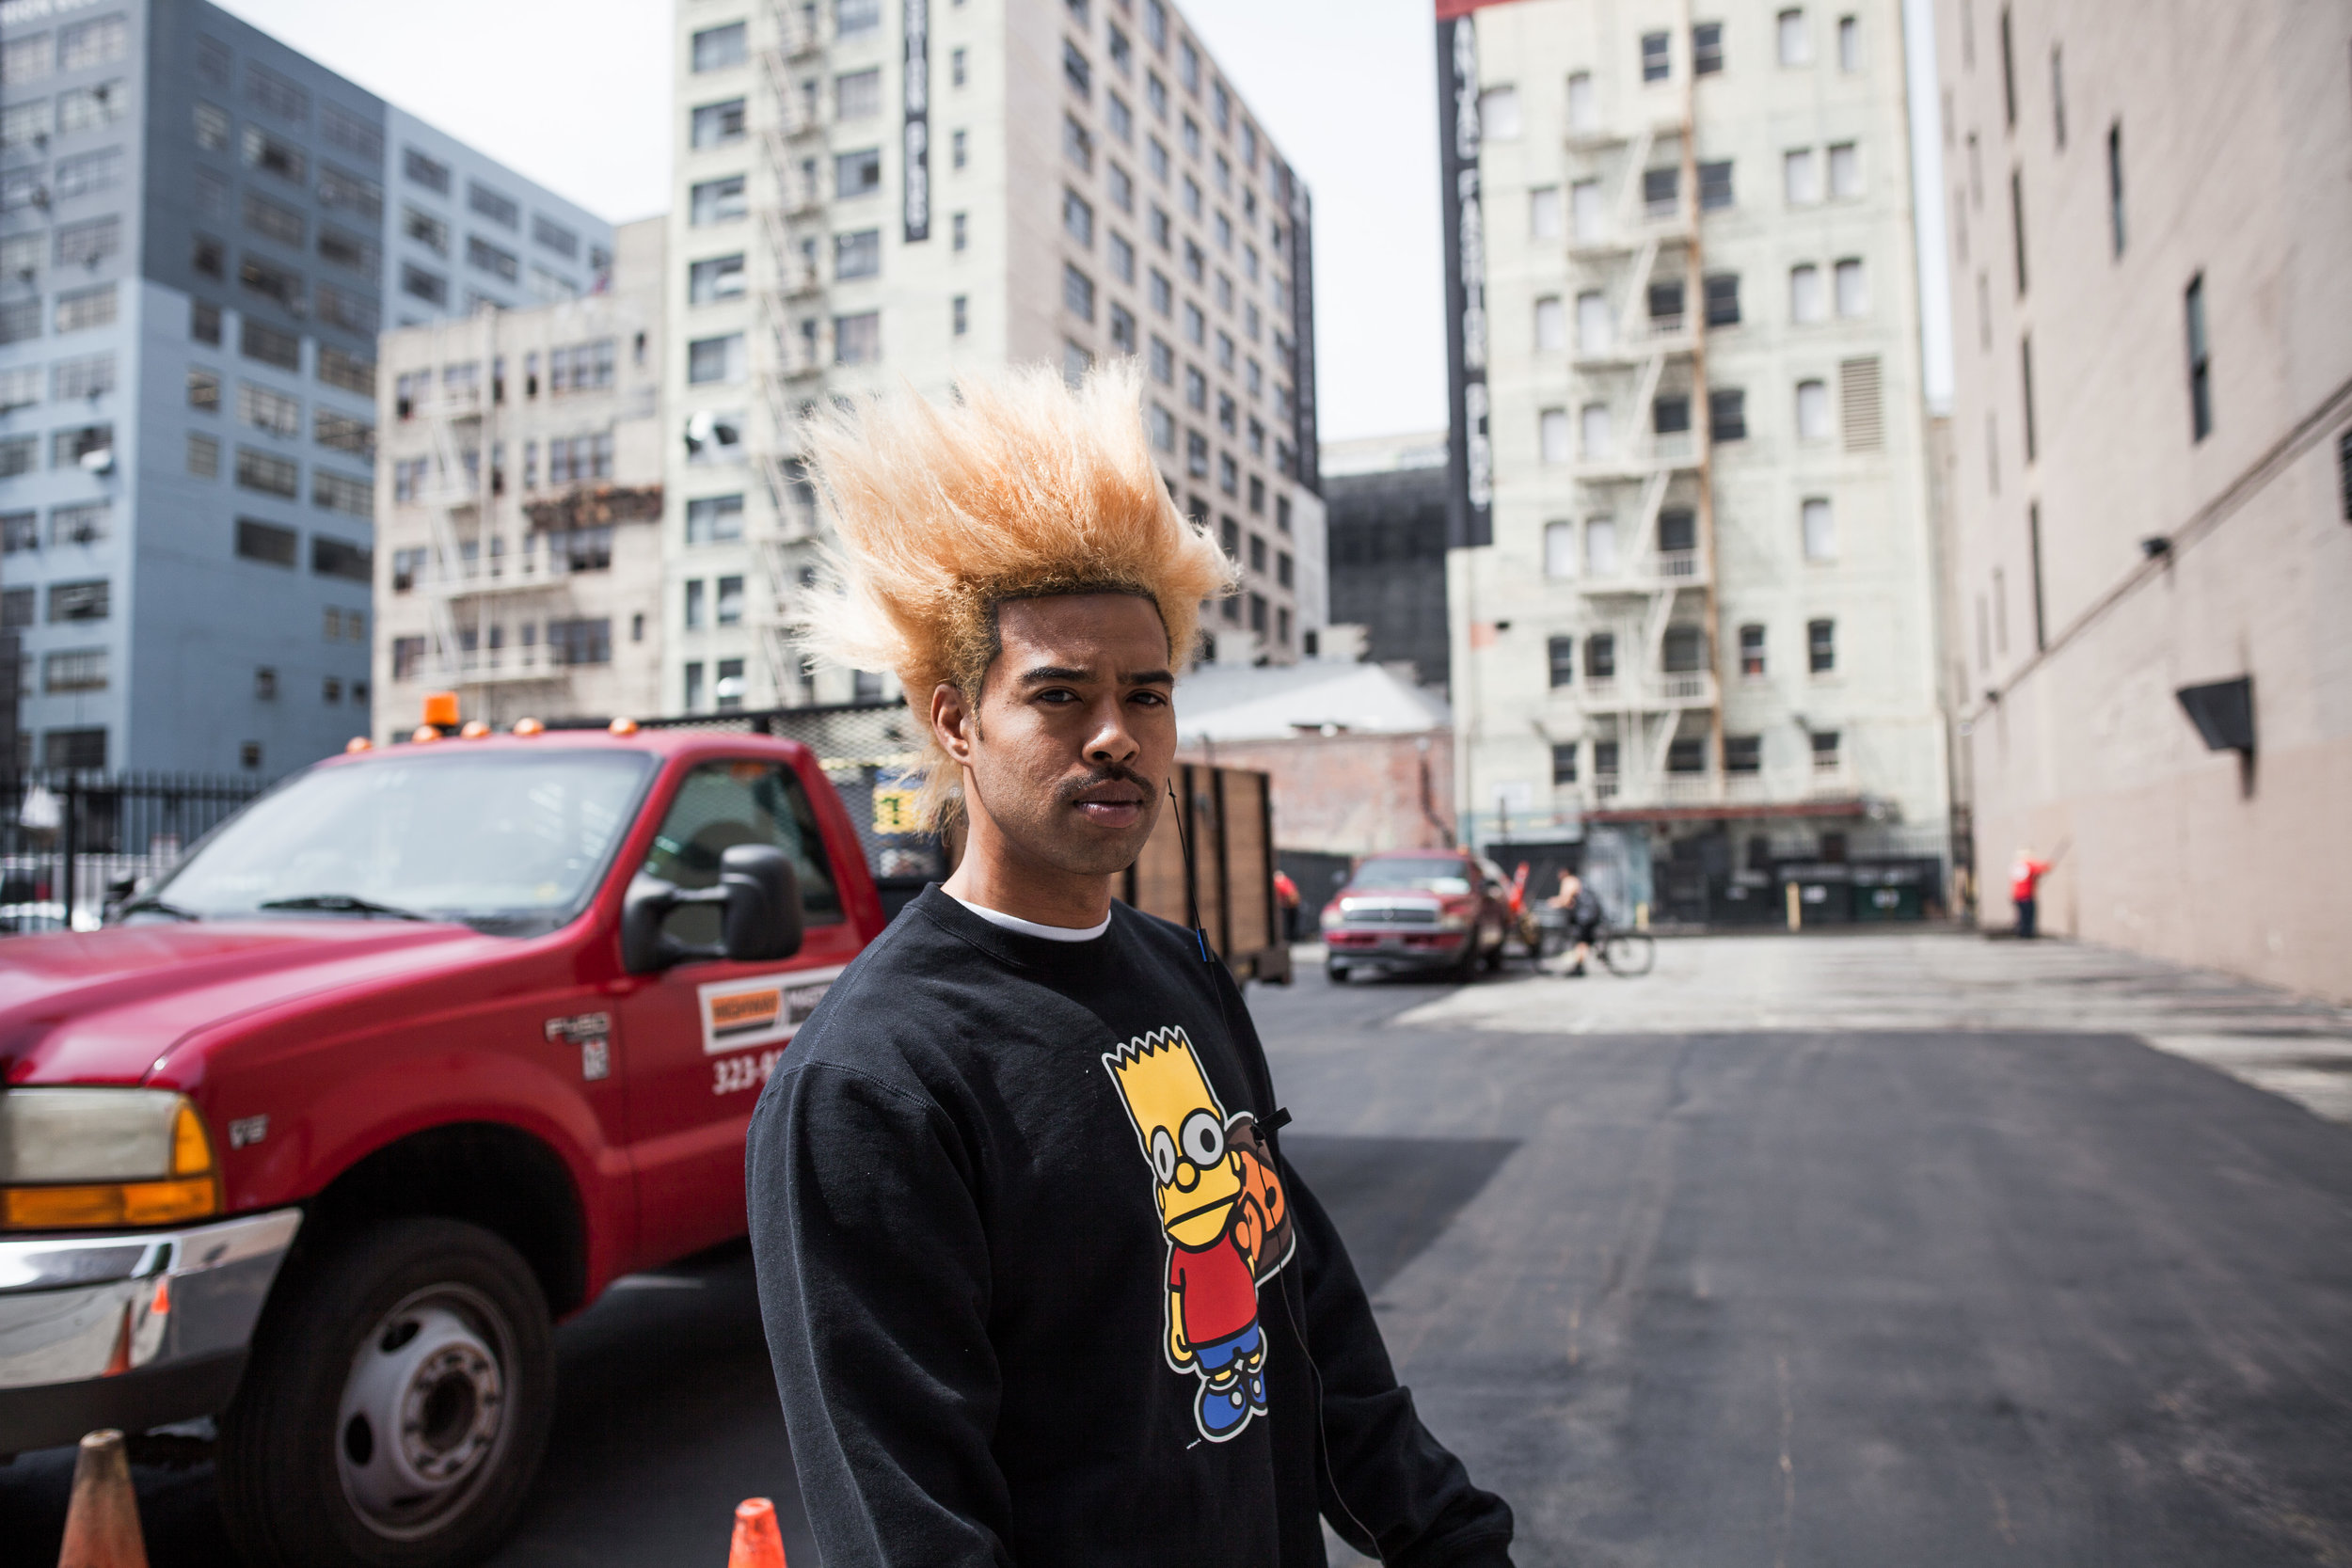 this is not nick but rather a photo he took in los angeles of a guy with bart simpson hair